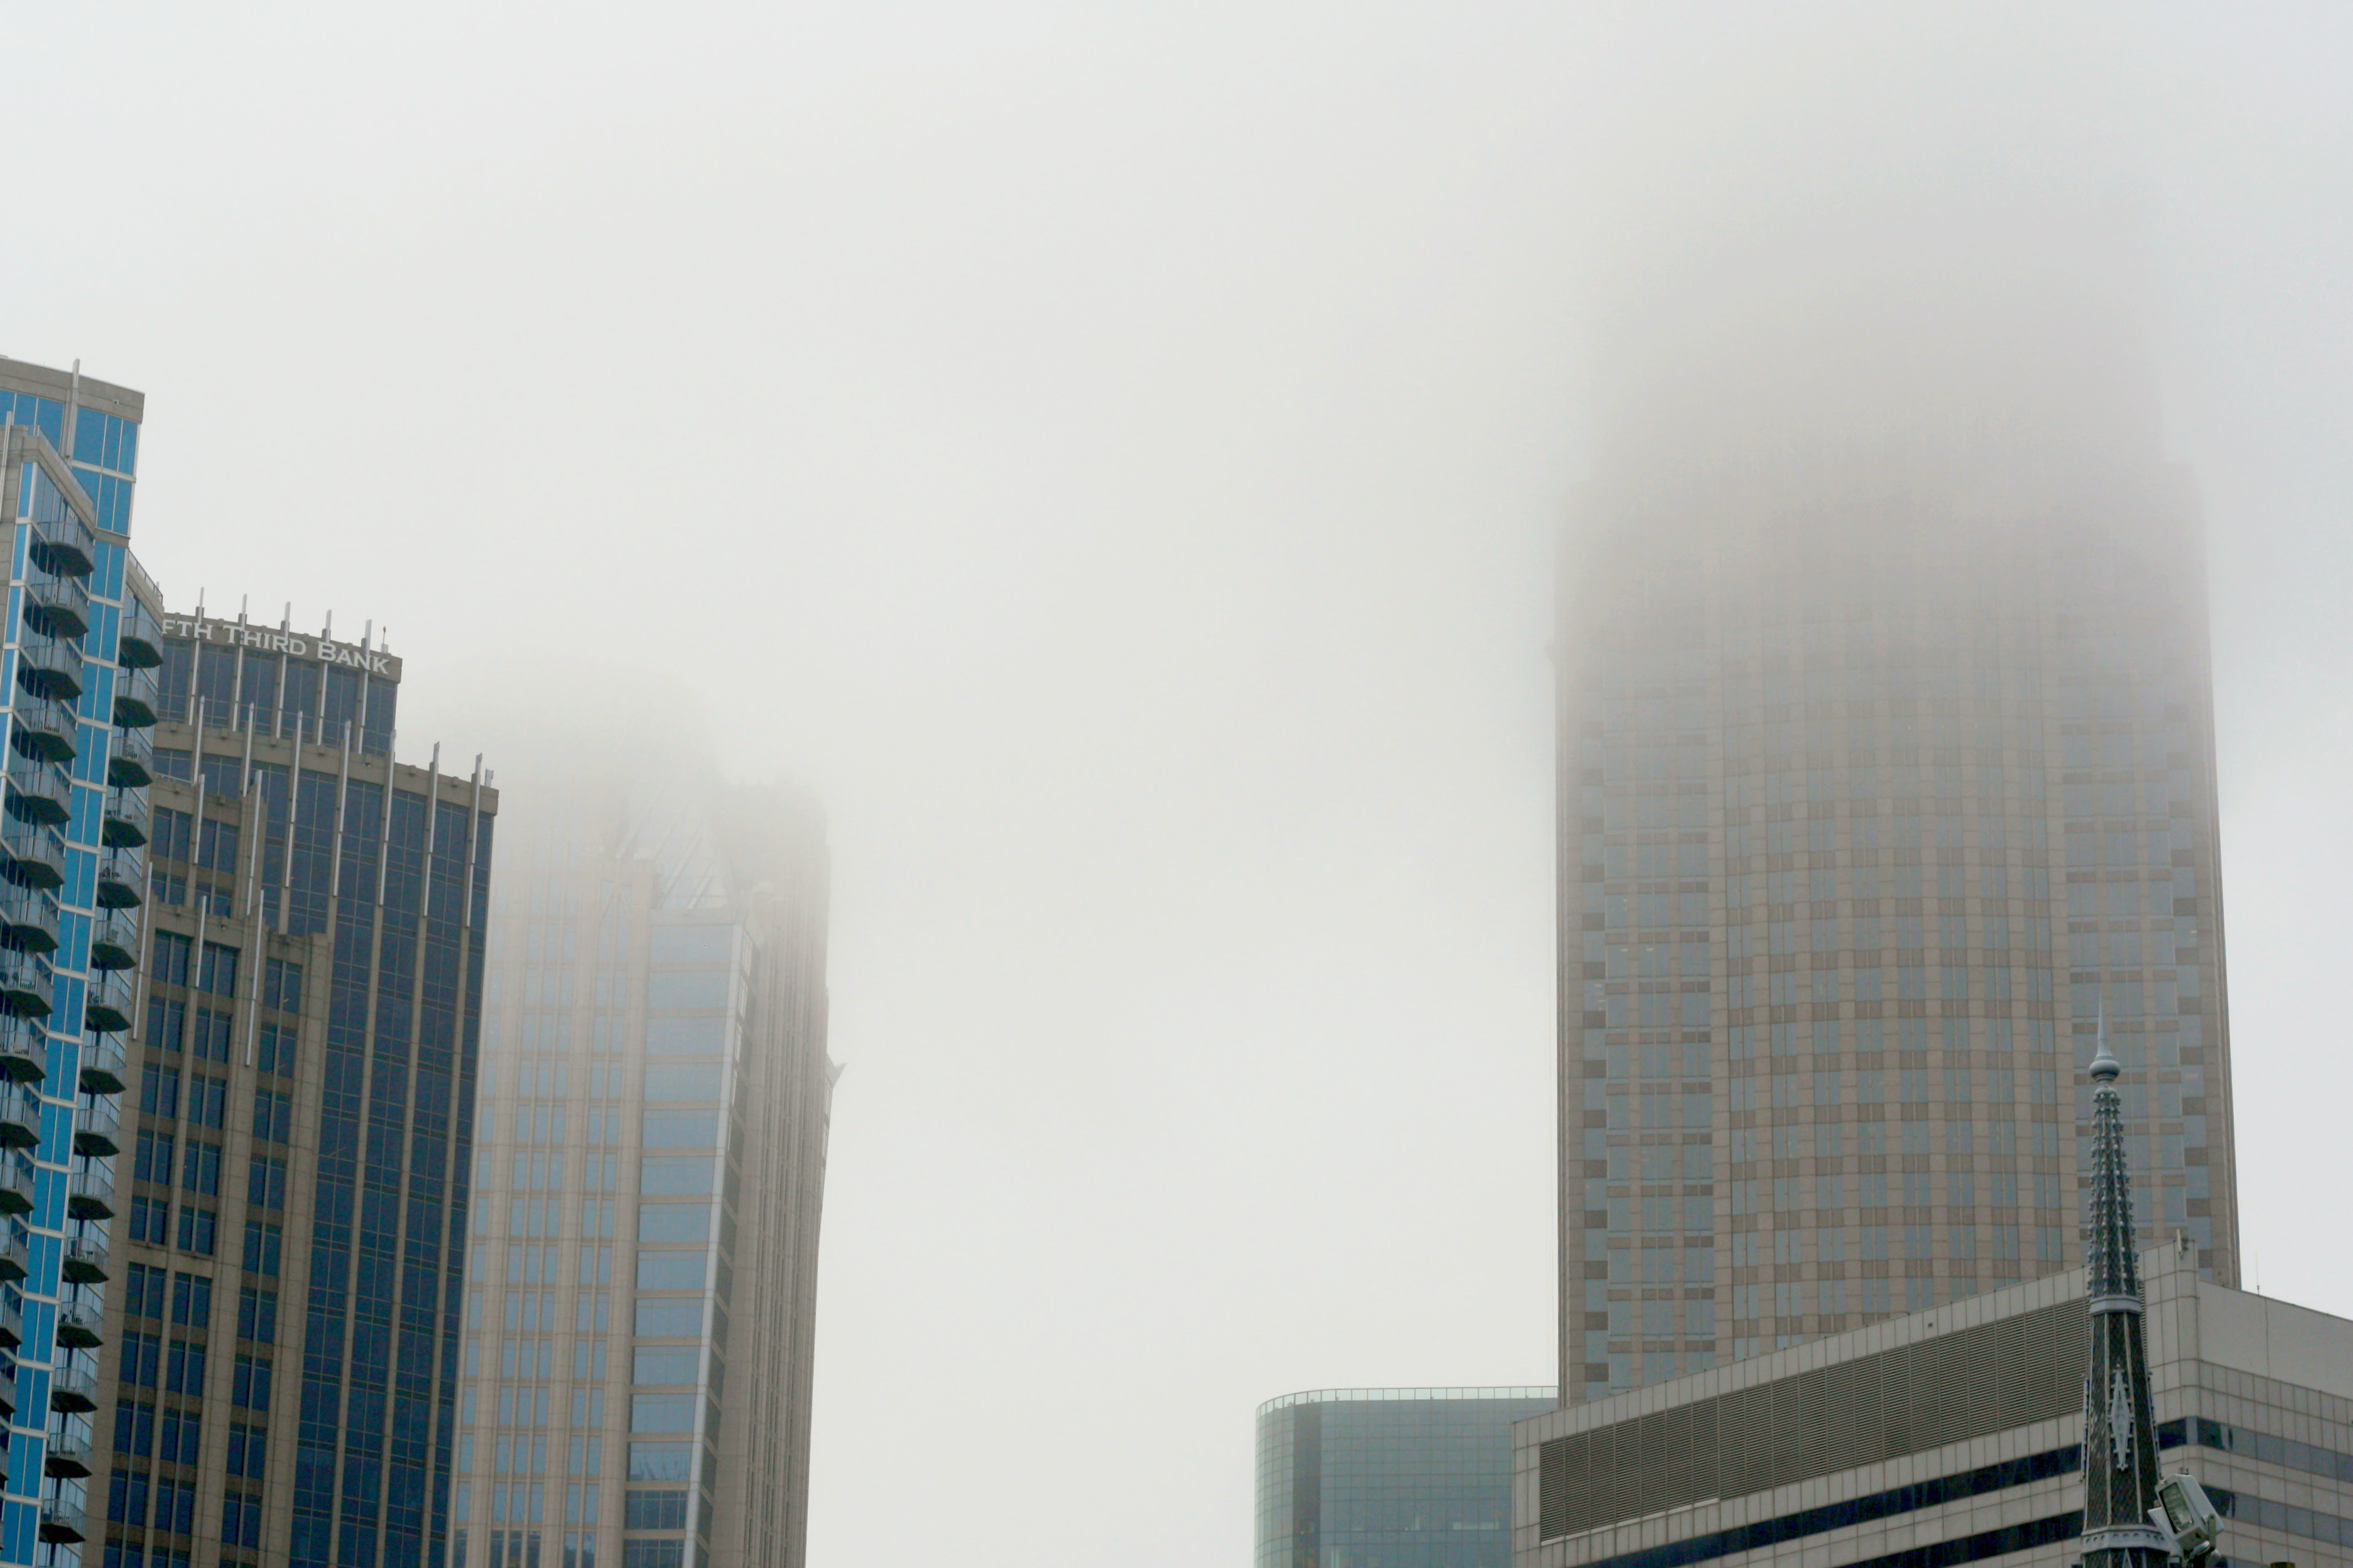 foggy cityscape charlotte, nc stylewiseguide.com